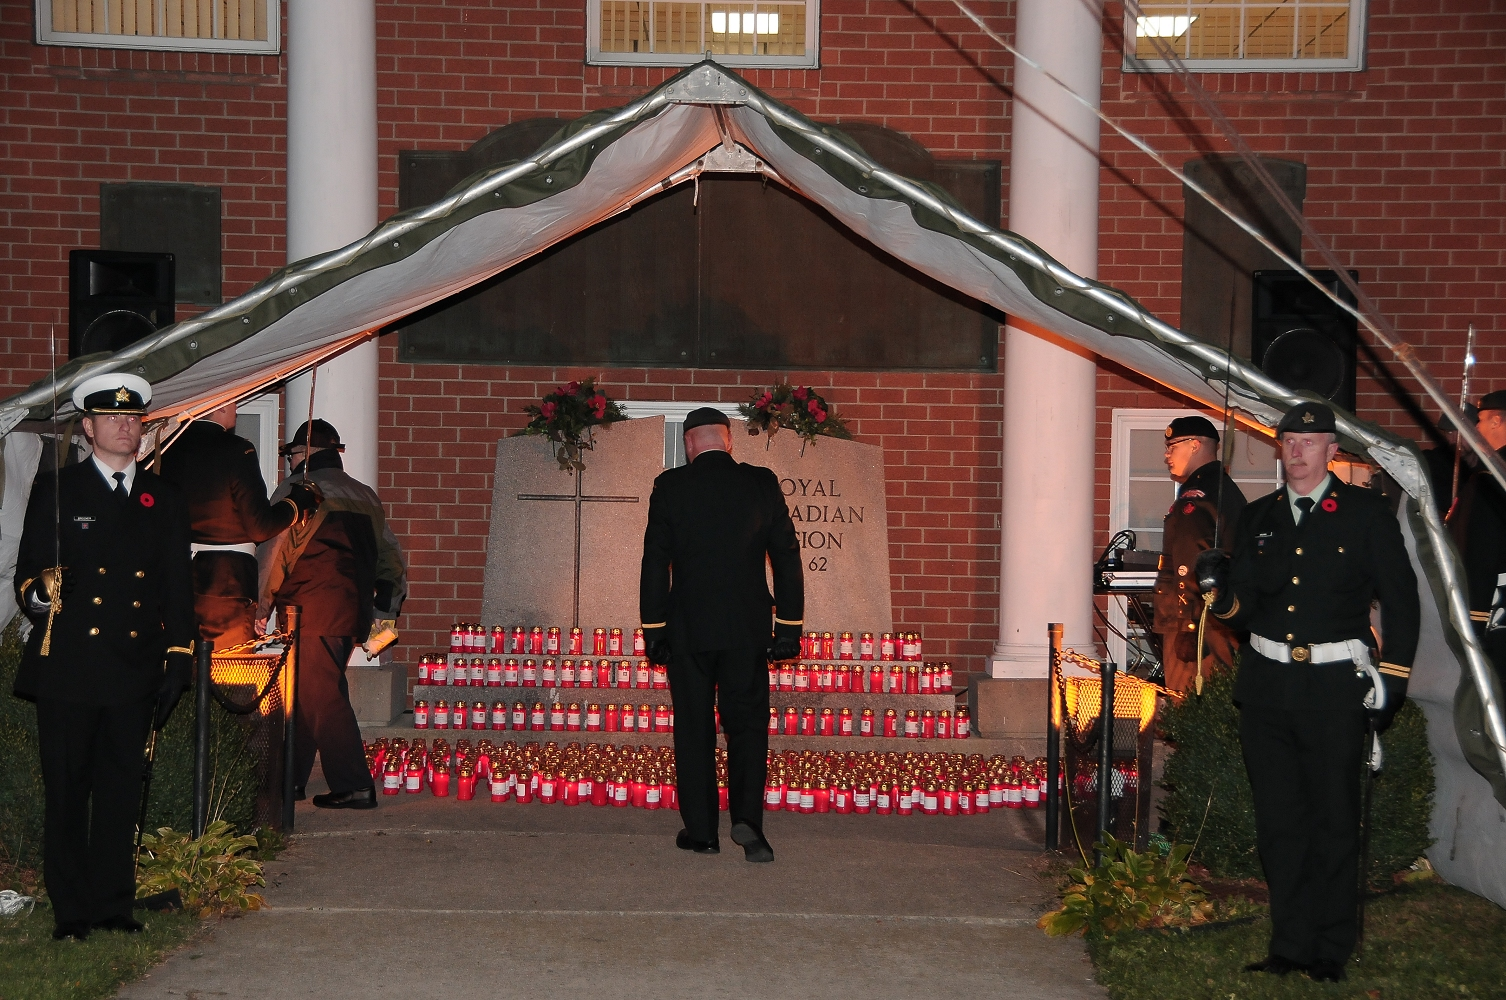 Royal Canadian Legion Br. 62's Candle Light Vigil